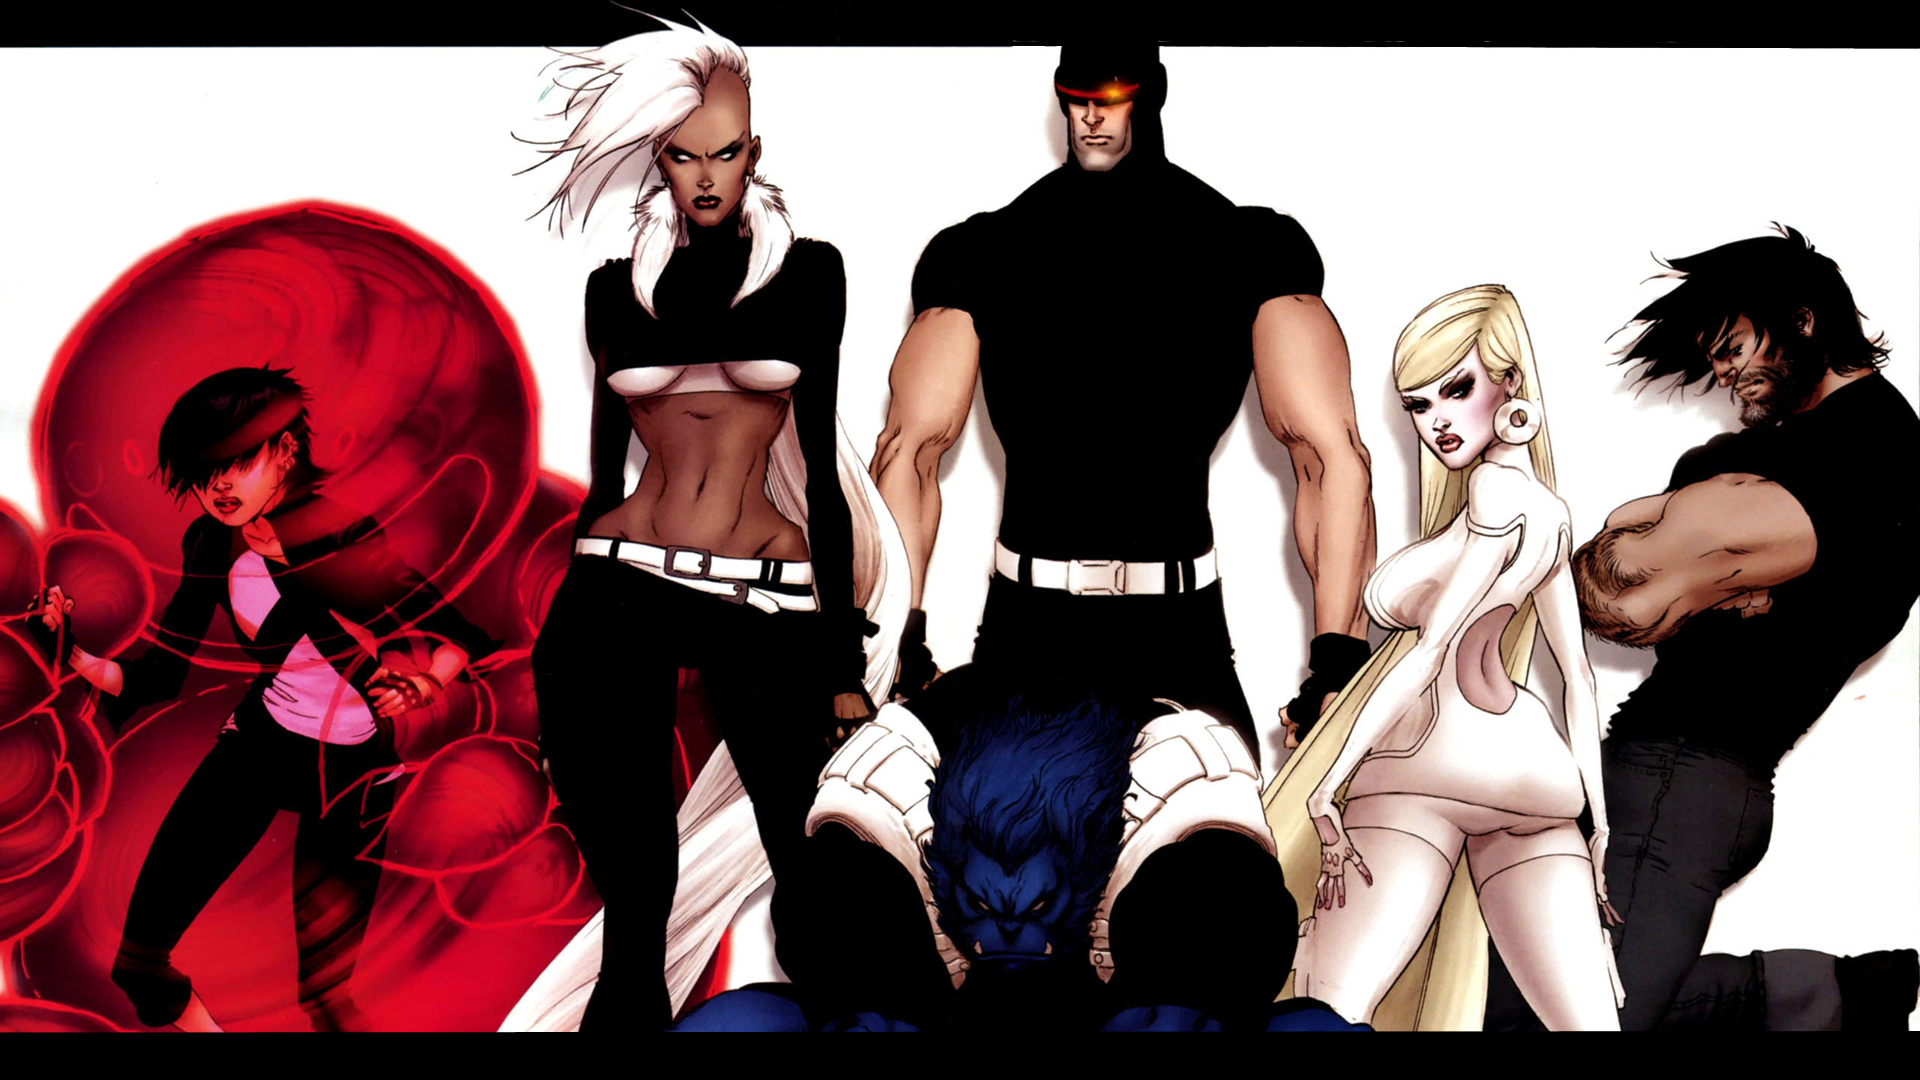 X Men Anime Characters : X men wolverine anime emma frost cyclops astonishing